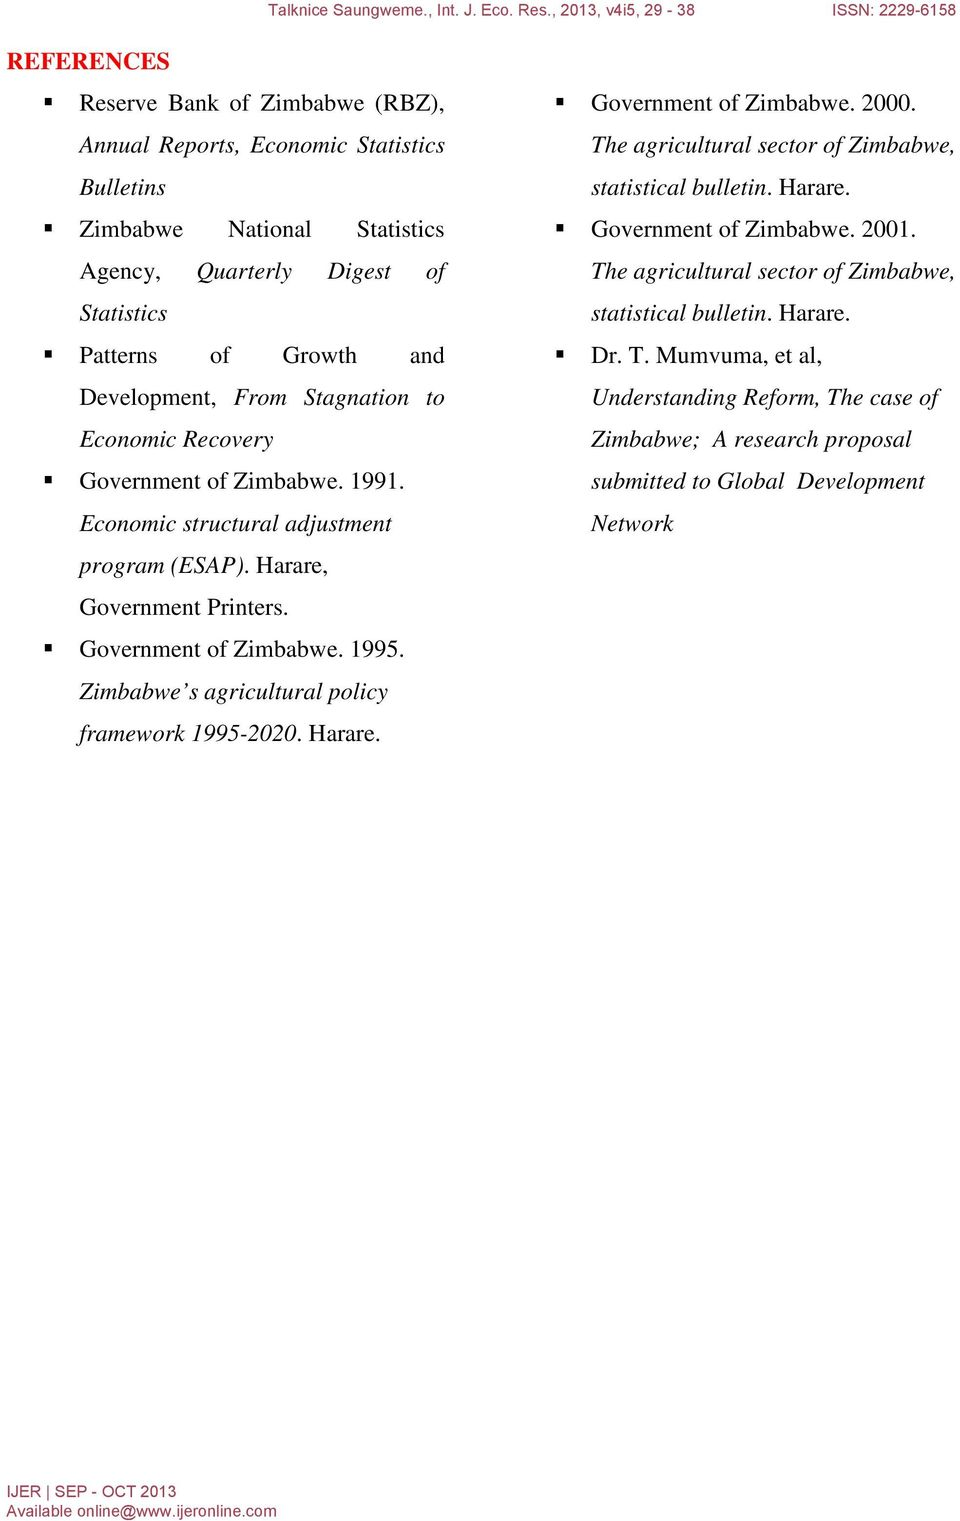 Zimbabwe s agricultural policy framework 1995-2020. Harare. Government of Zimbabwe. 2000. The agricultural sector of Zimbabwe, statistical bulletin. Harare. Government of Zimbabwe. 2001.